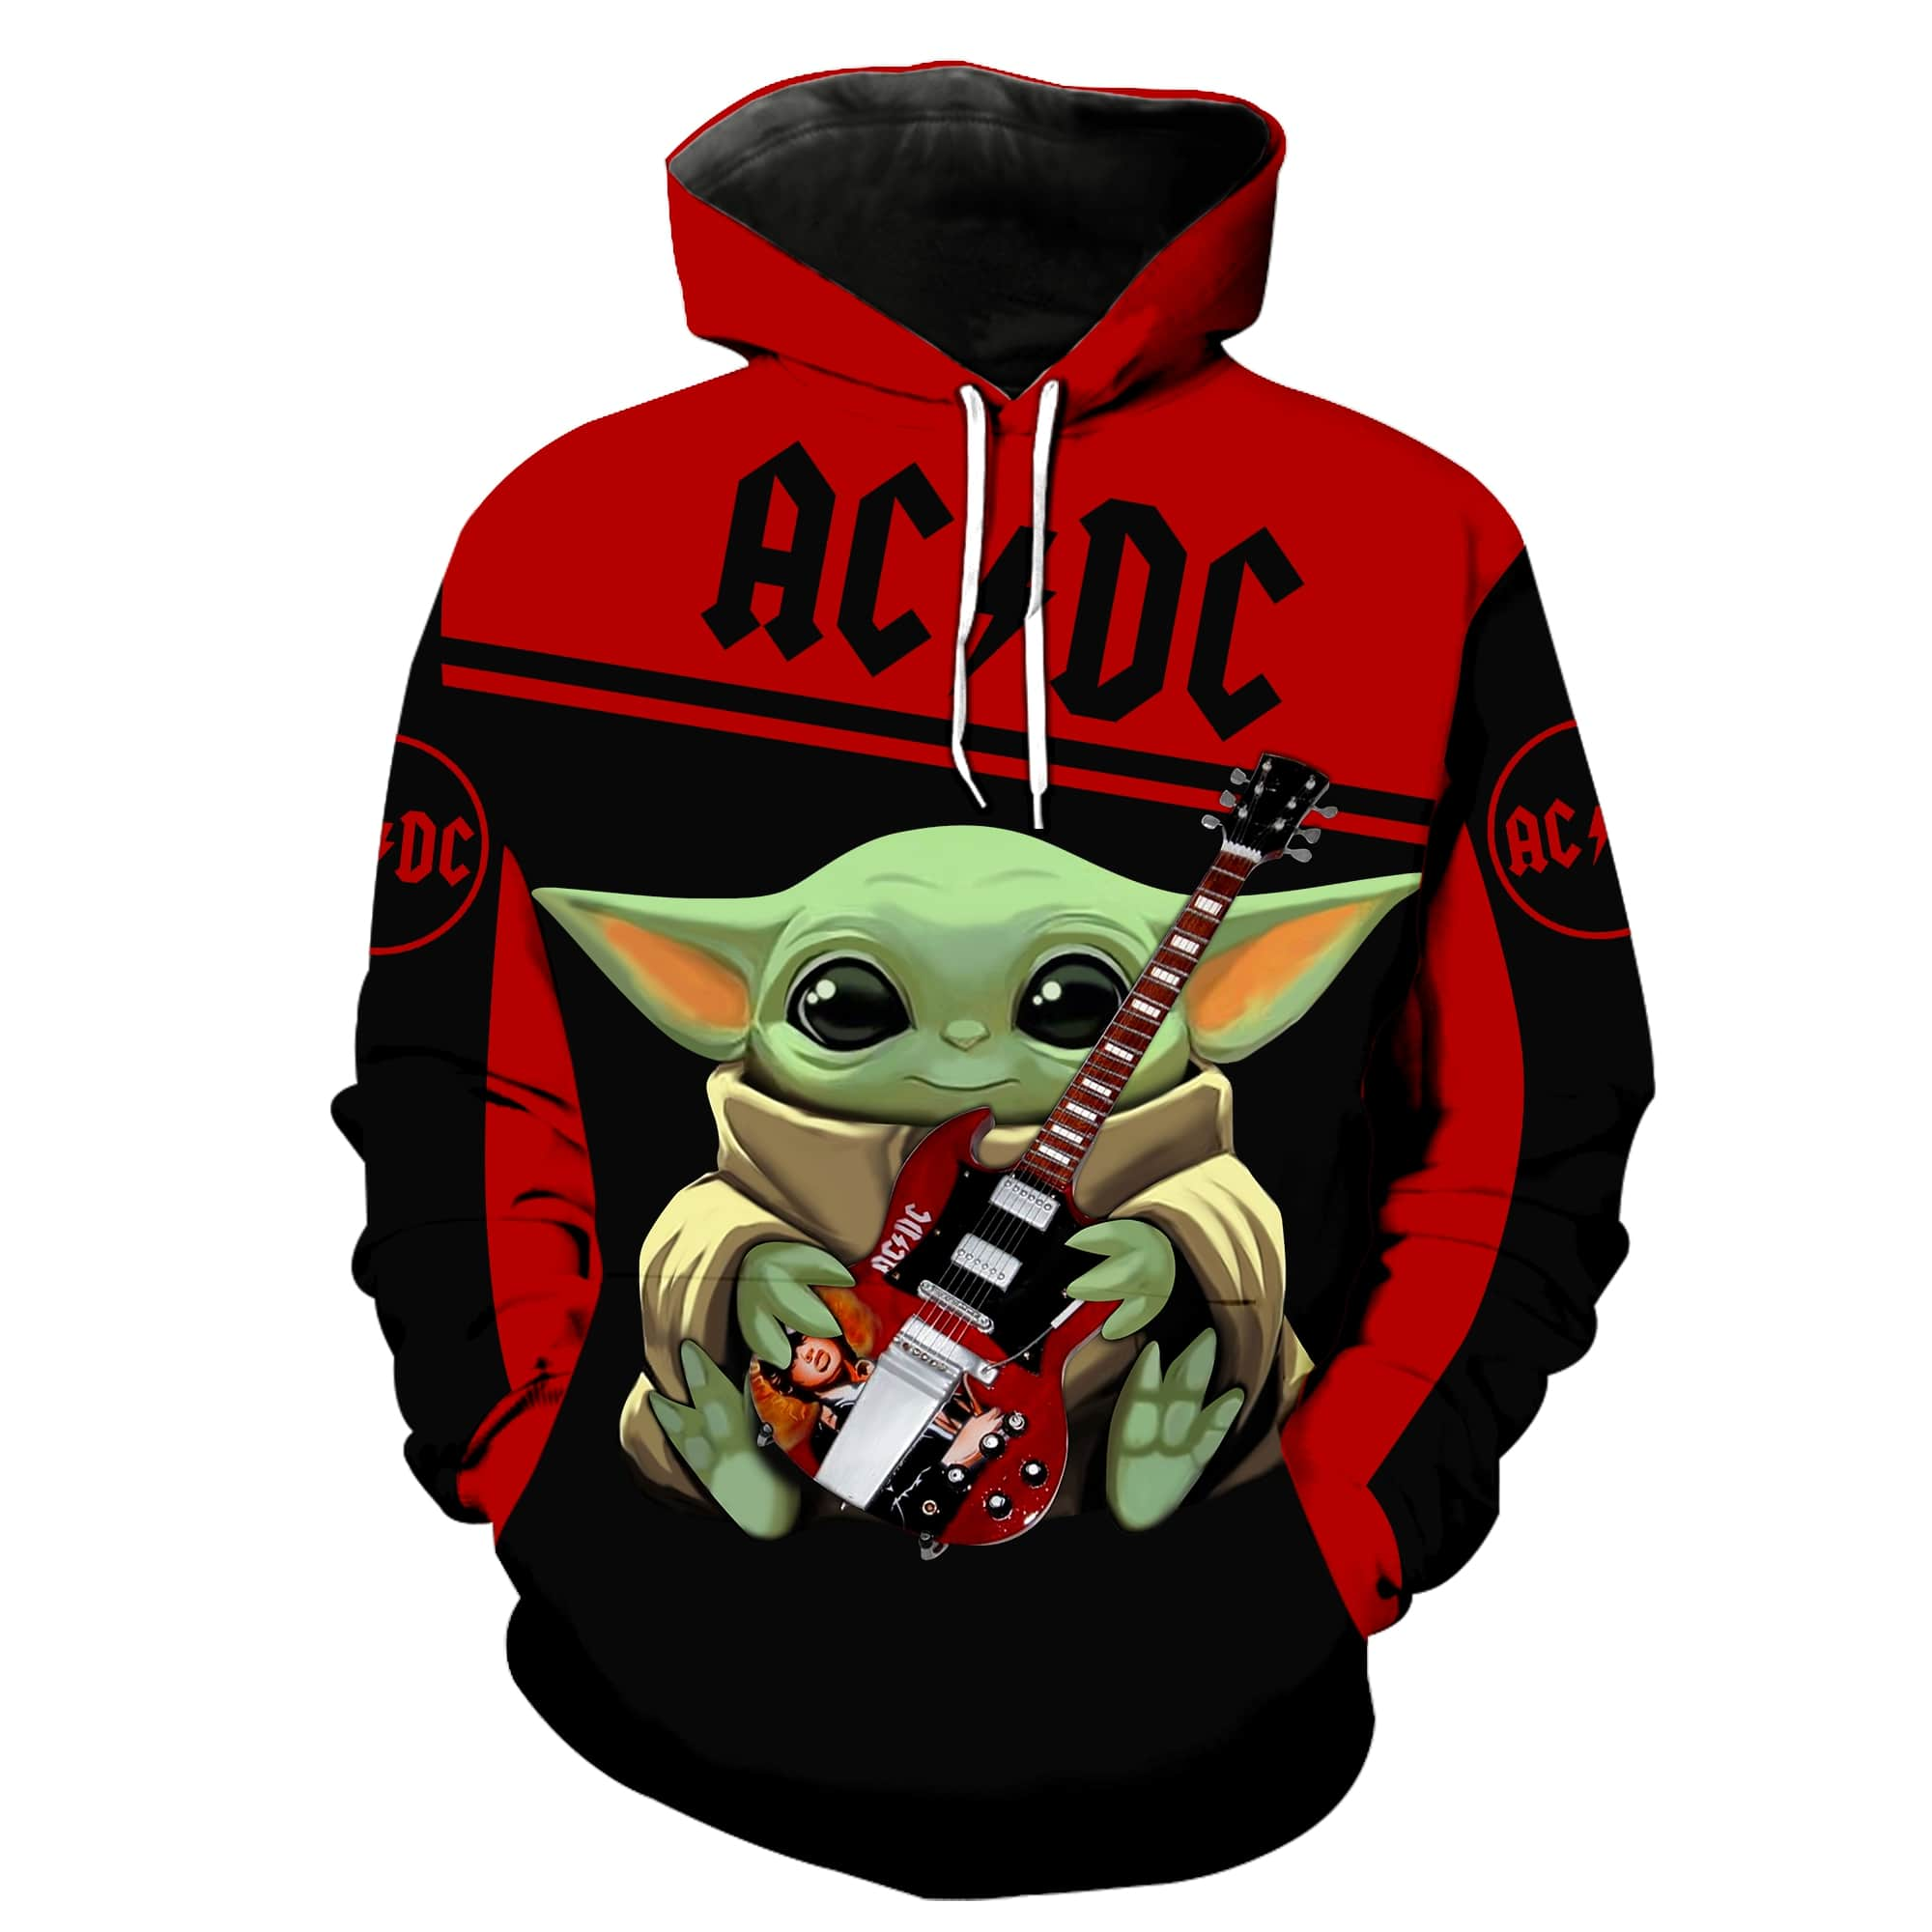 ACDC baby yoda all over print hoodie